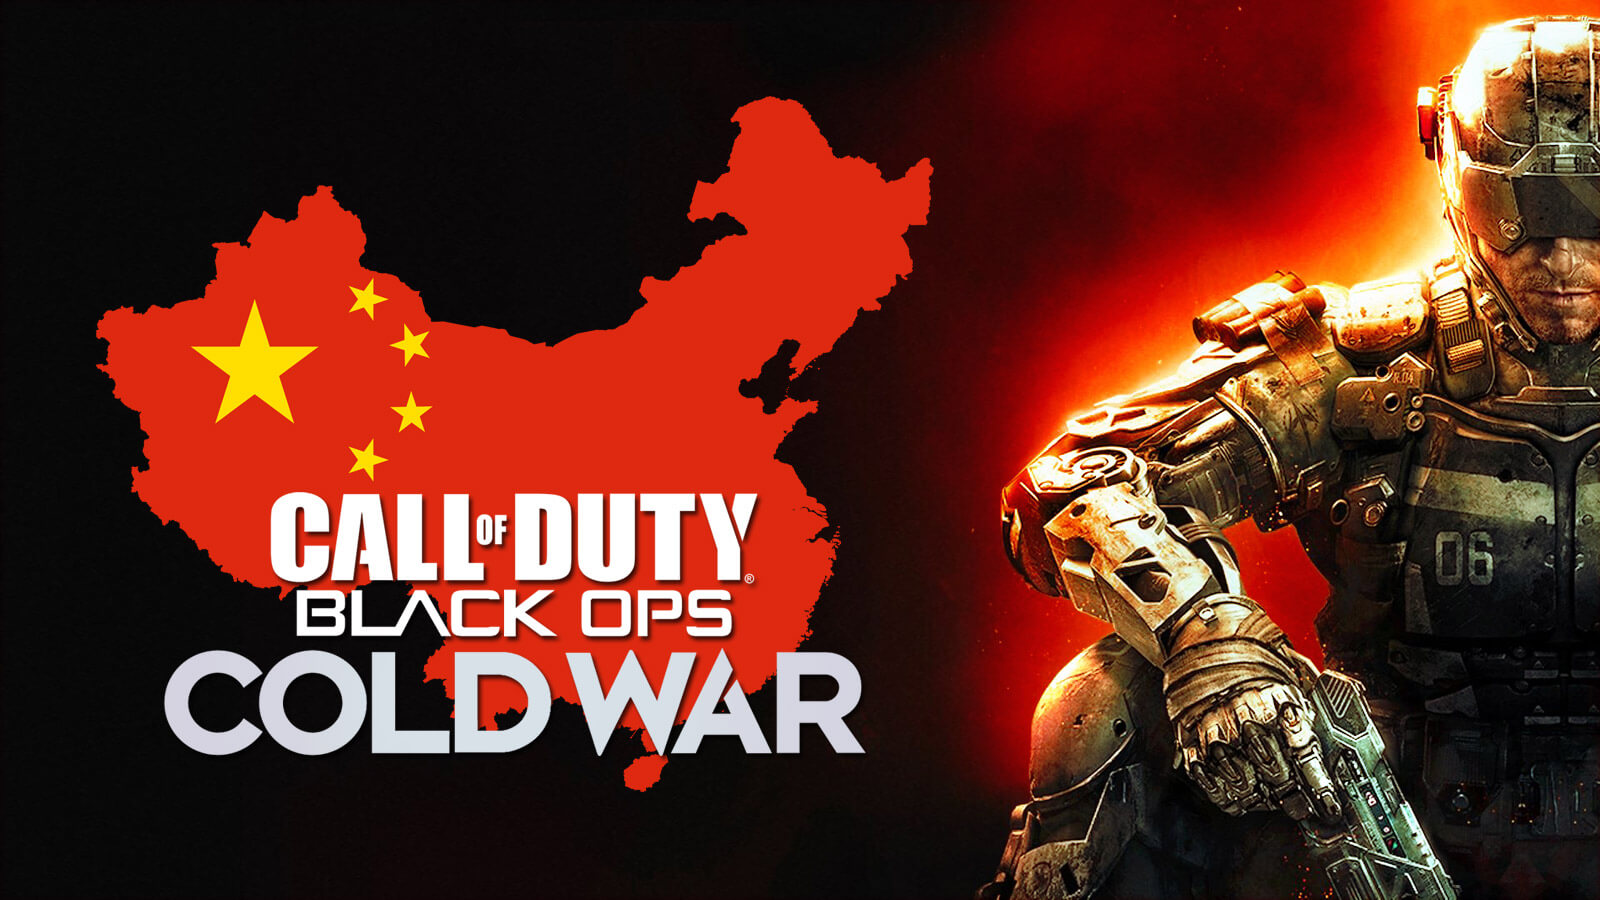 Black Ops Cold War Trailer Banned In China Over Tiananmen Square Protest Footage